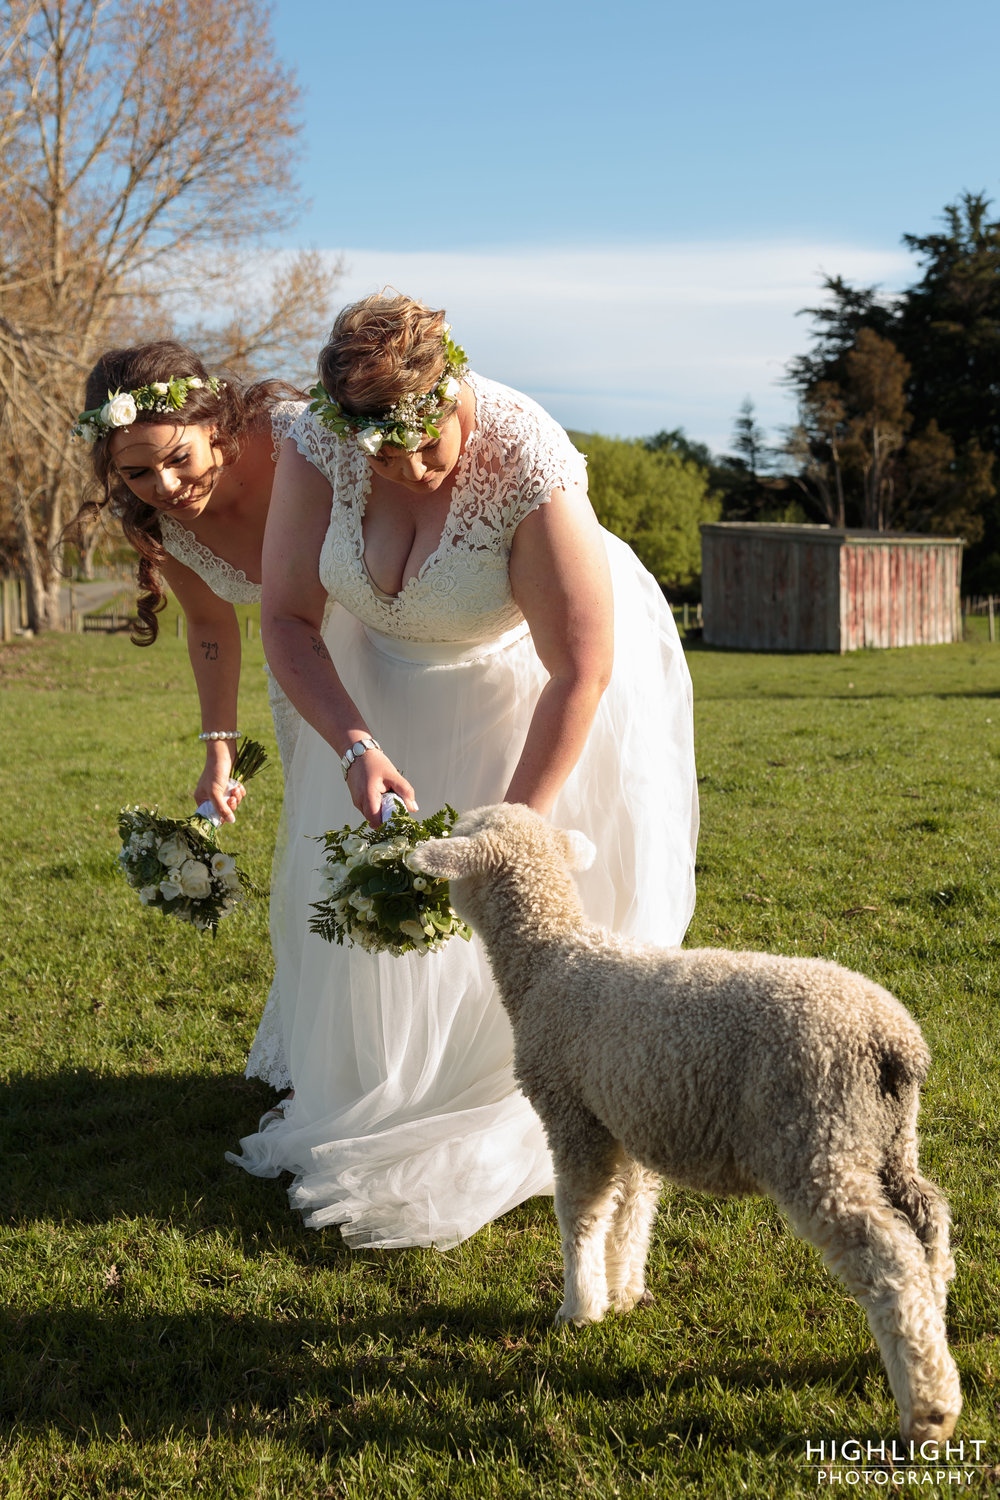 highlight_wedding_photography_makoura_lodge_manawatu_new_zealand-115.jpg